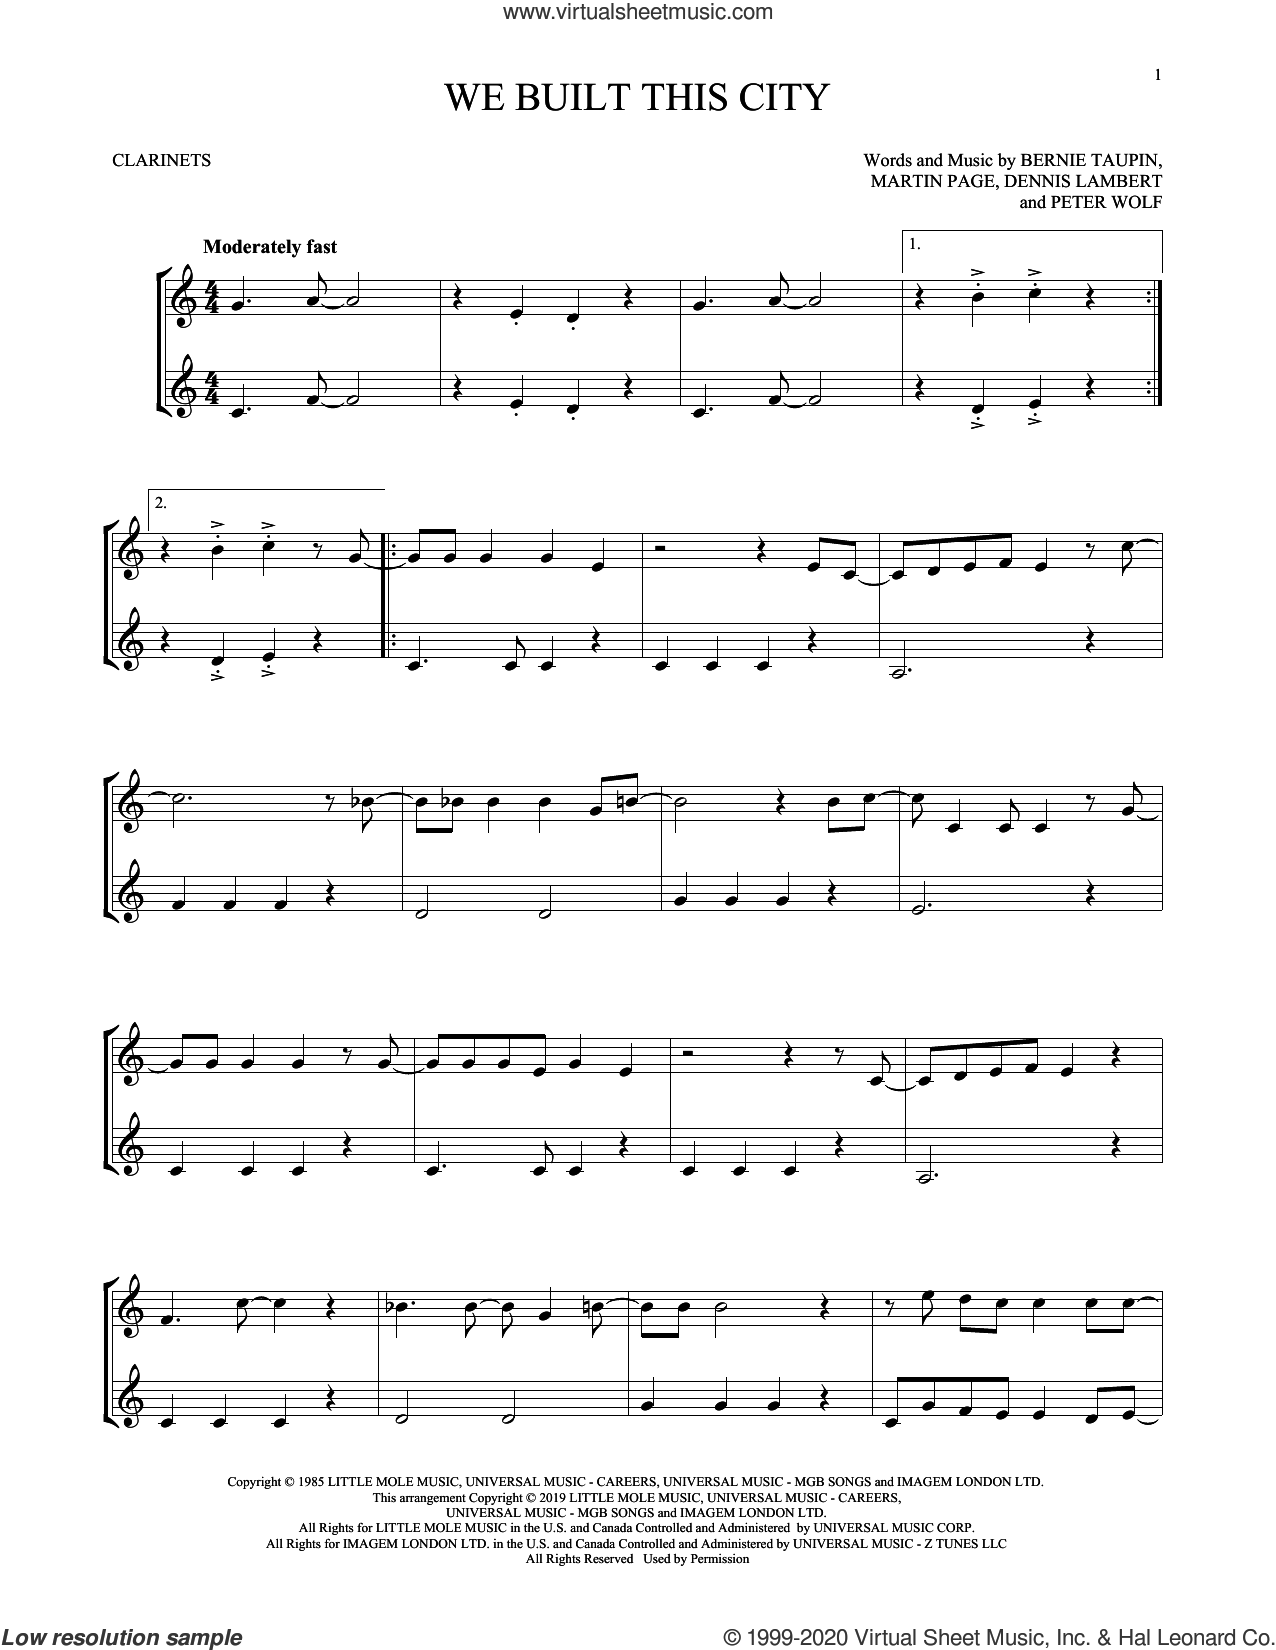 We Built This City sheet music for two clarinets (duets) by Starship, Bernie Taupin, Dennis Lambert, Martin George Page and Peter Wolf, intermediate skill level